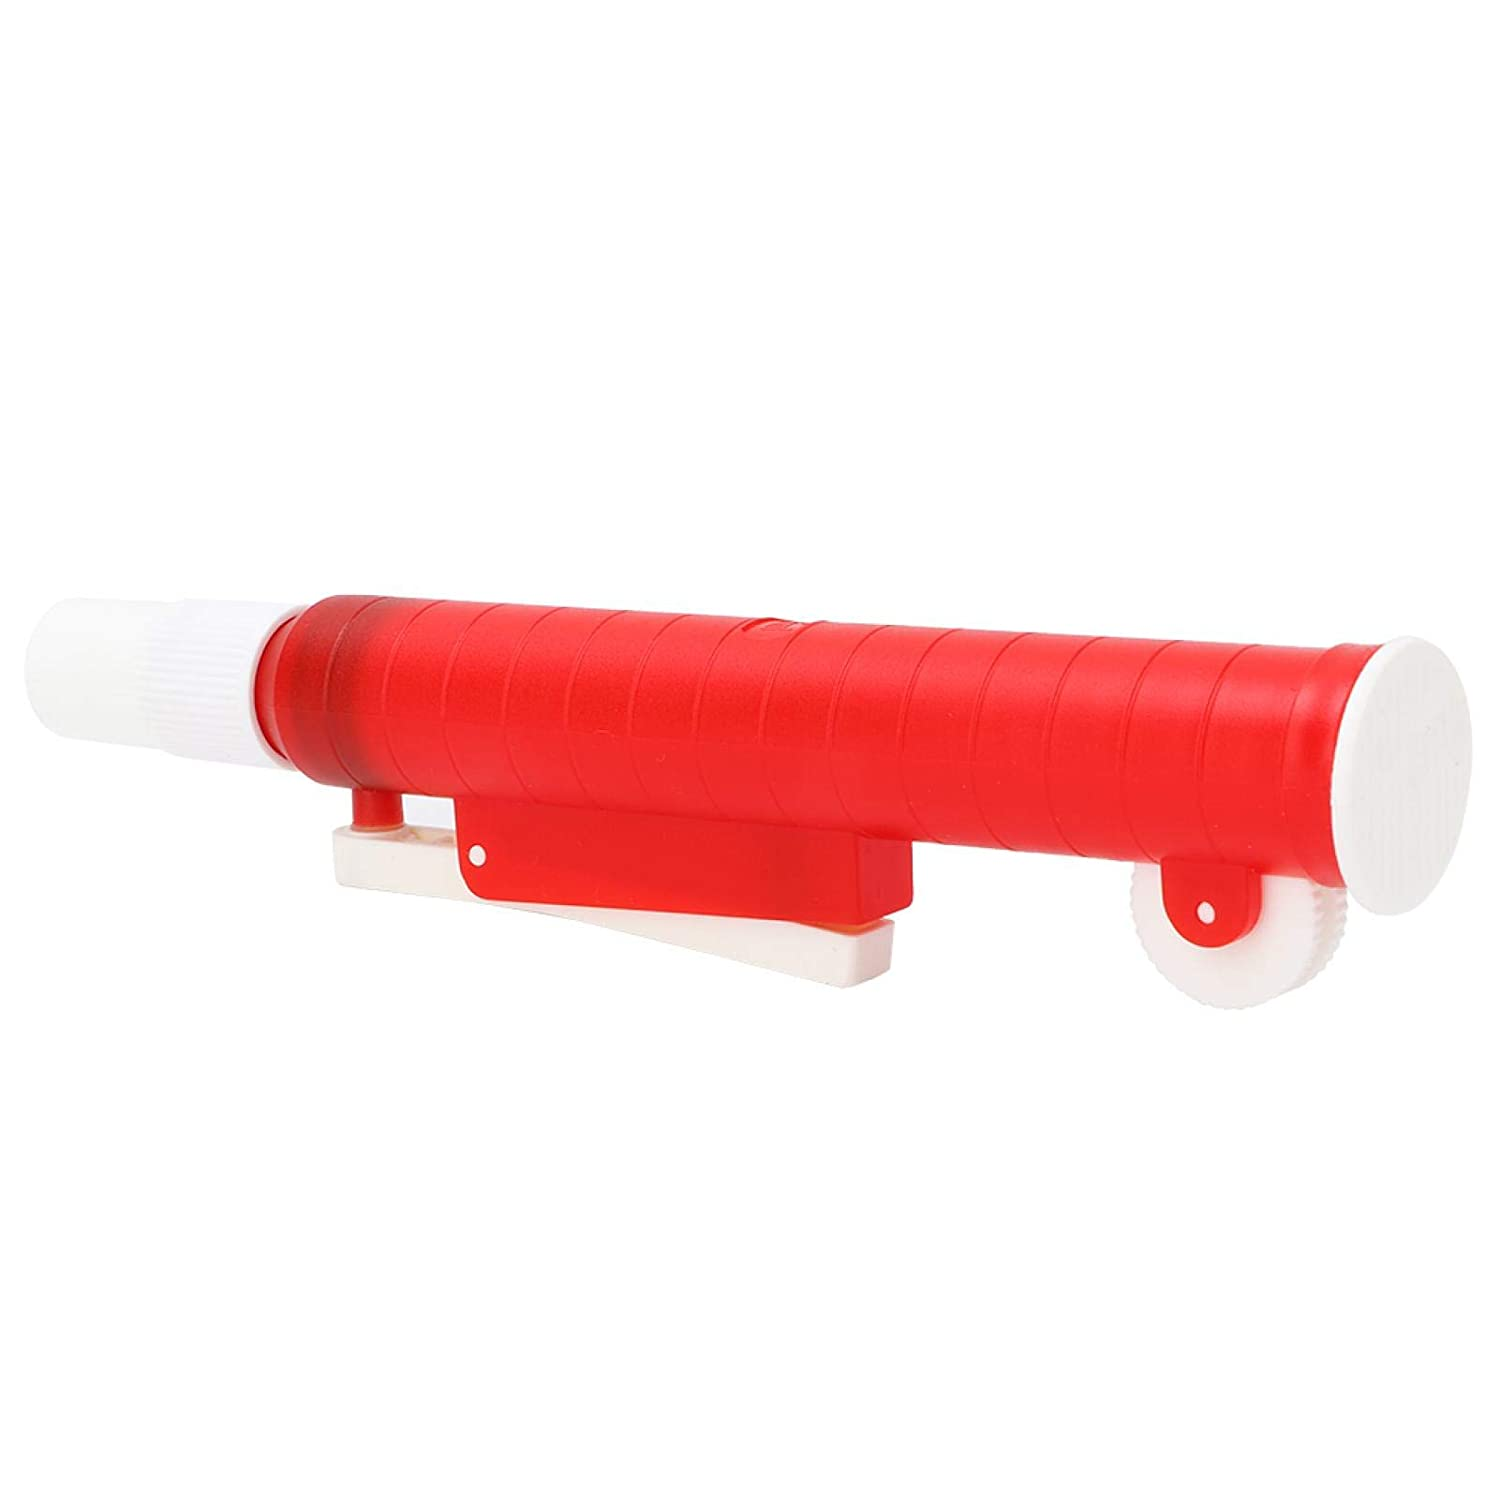 Disposable Max 58% OFF Plastic At the price 25ml Red Thumb Filler Pipette Wheel P